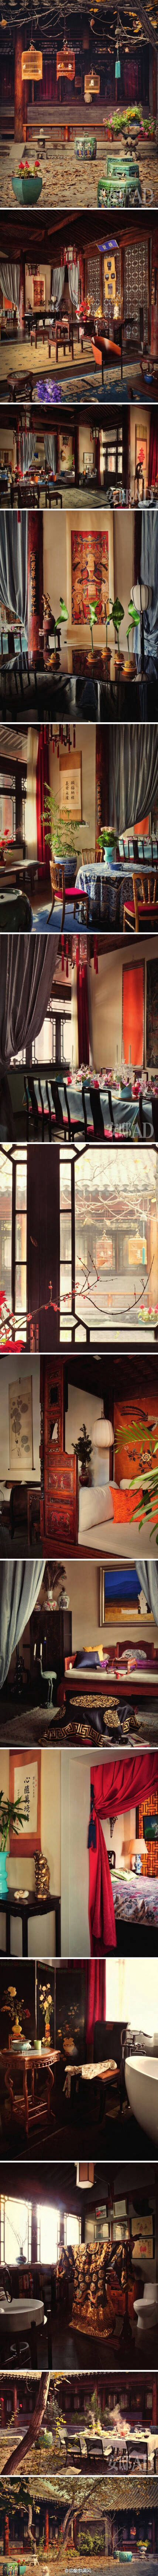 Ancient chinese home interior - Find This Pin And More On The Chinese Home